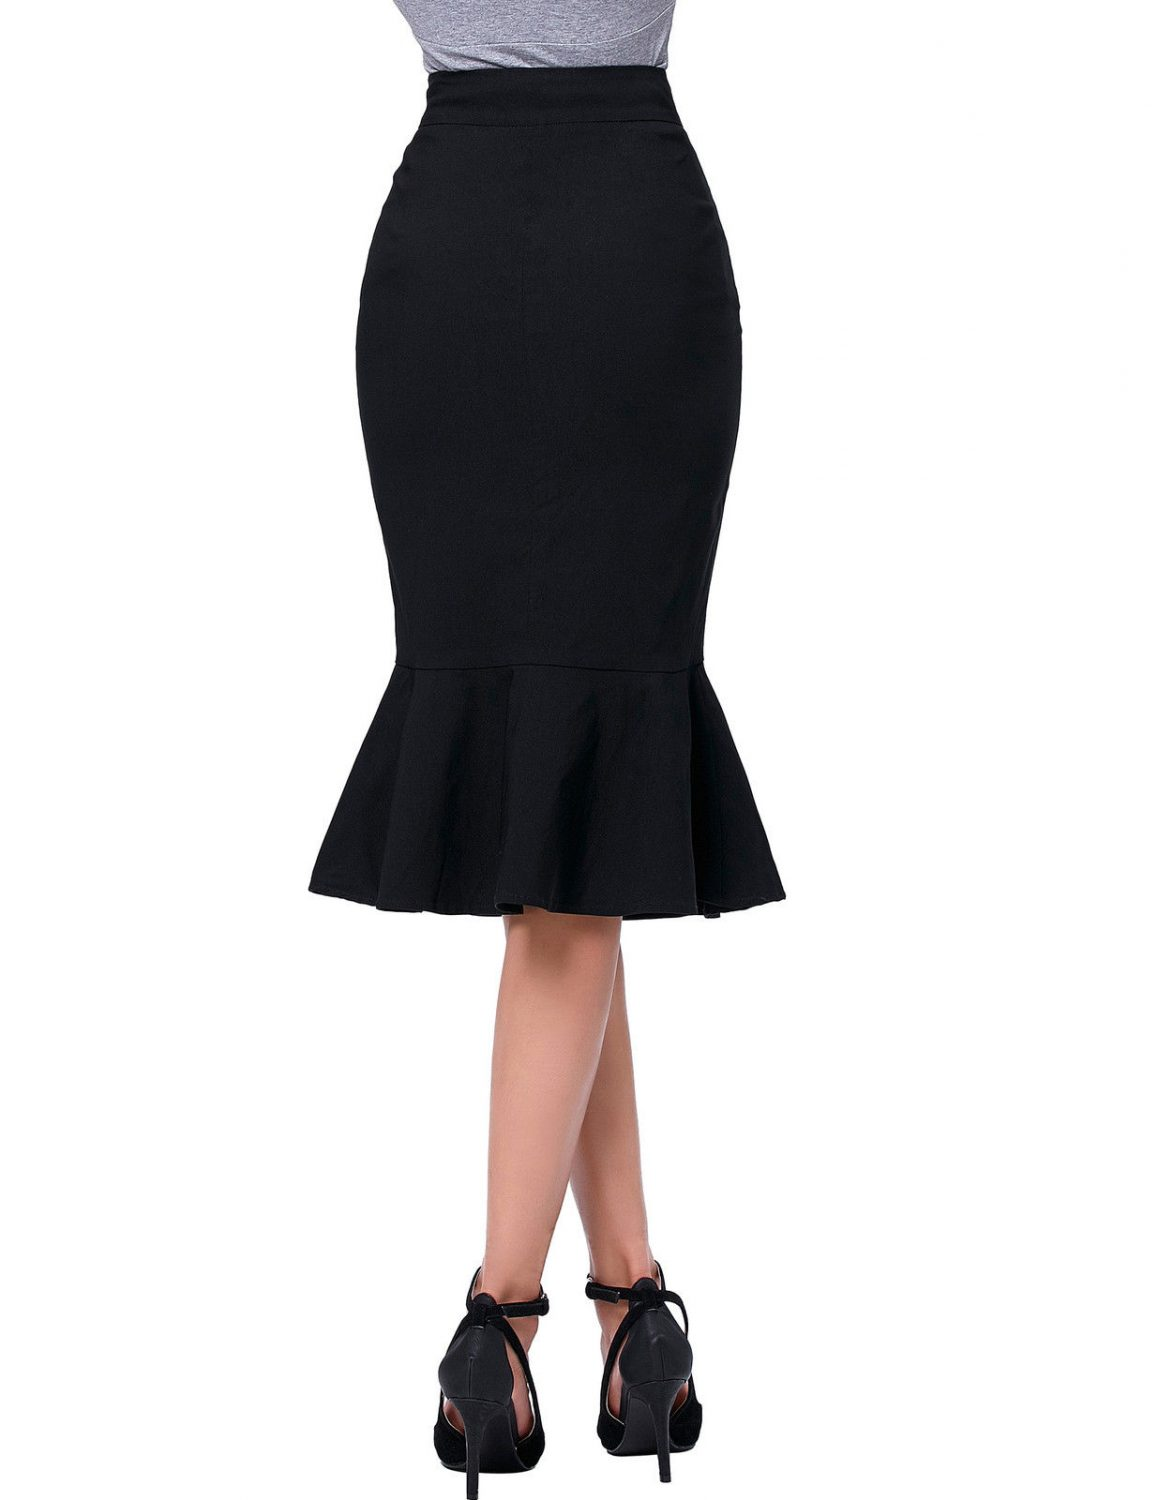 the-siren-black-vintage-skirt-back